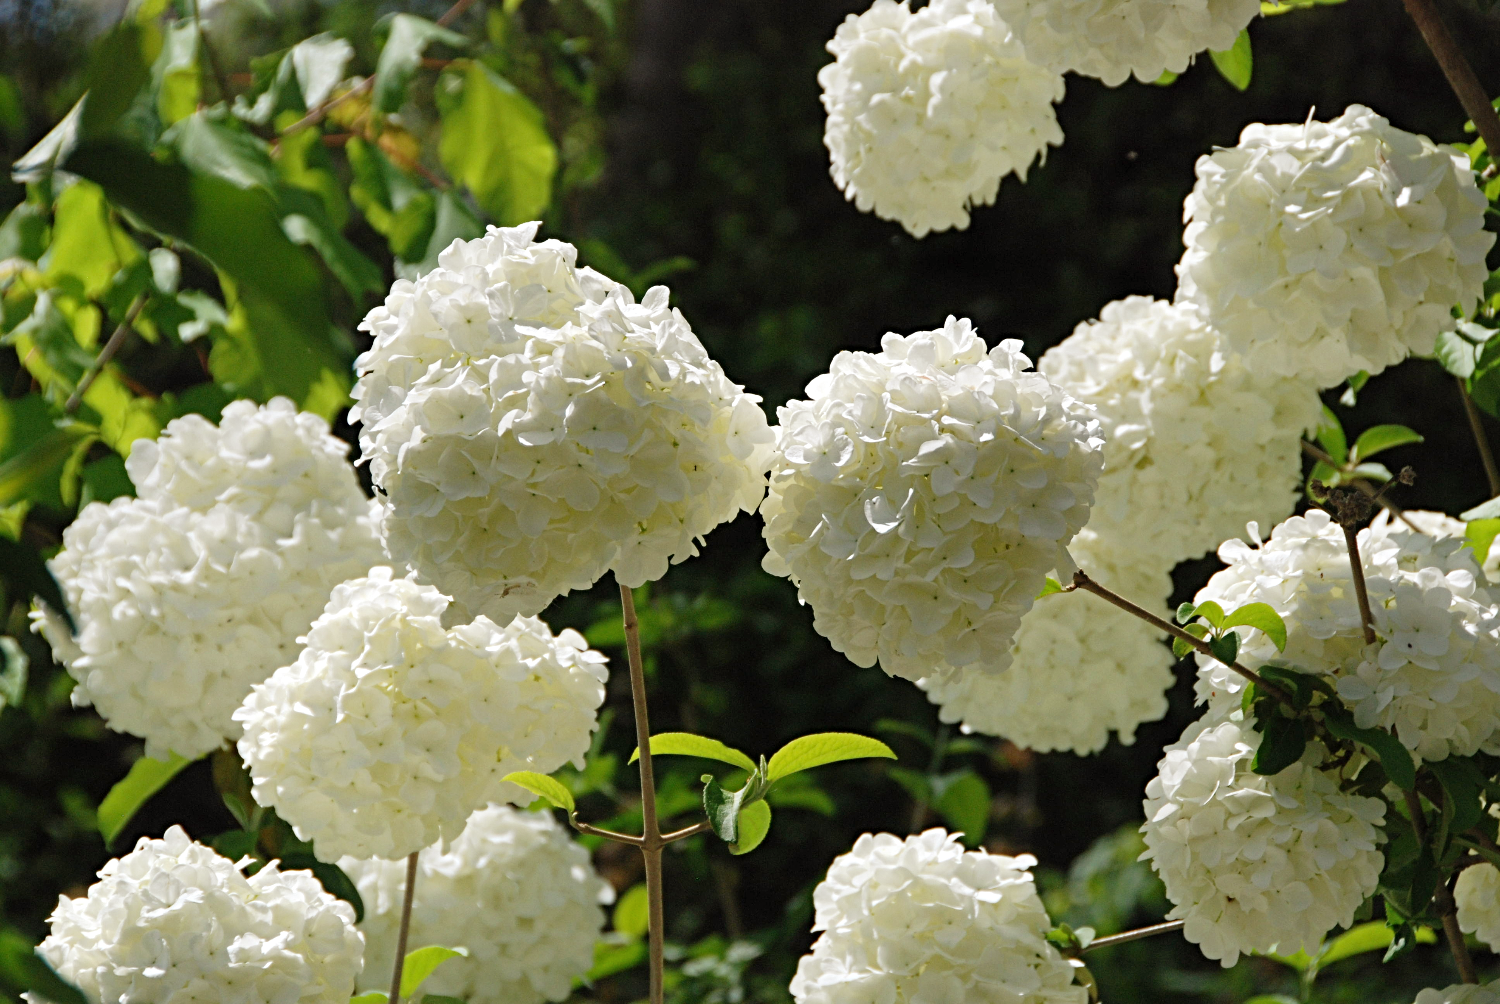 Snowballs in Bloom at River Park